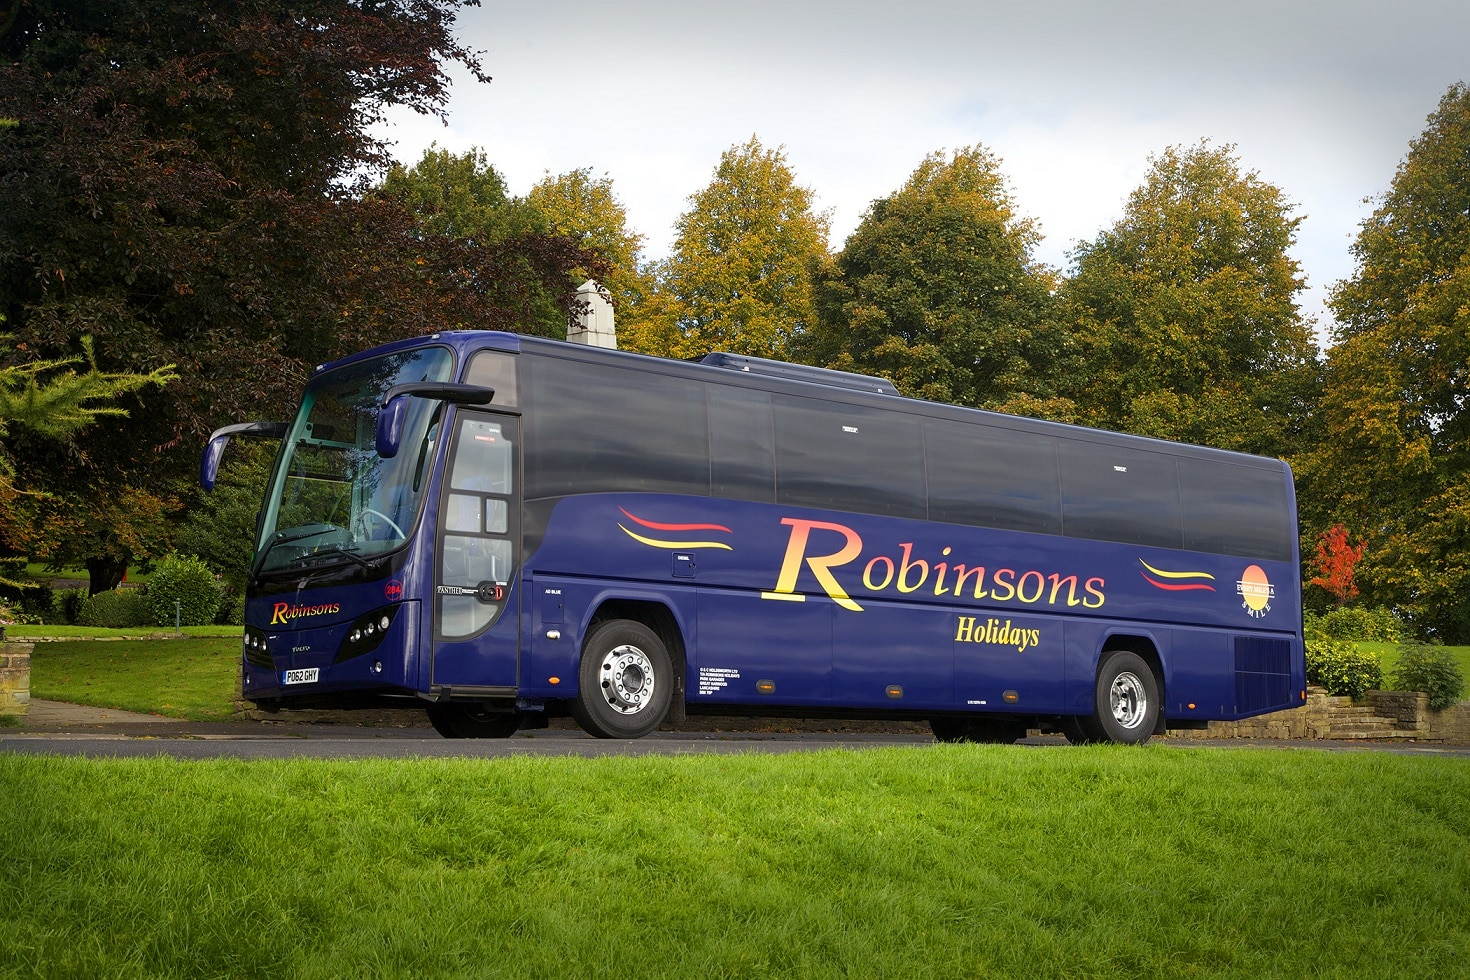 Robinsons Holidays purchased by Daish's